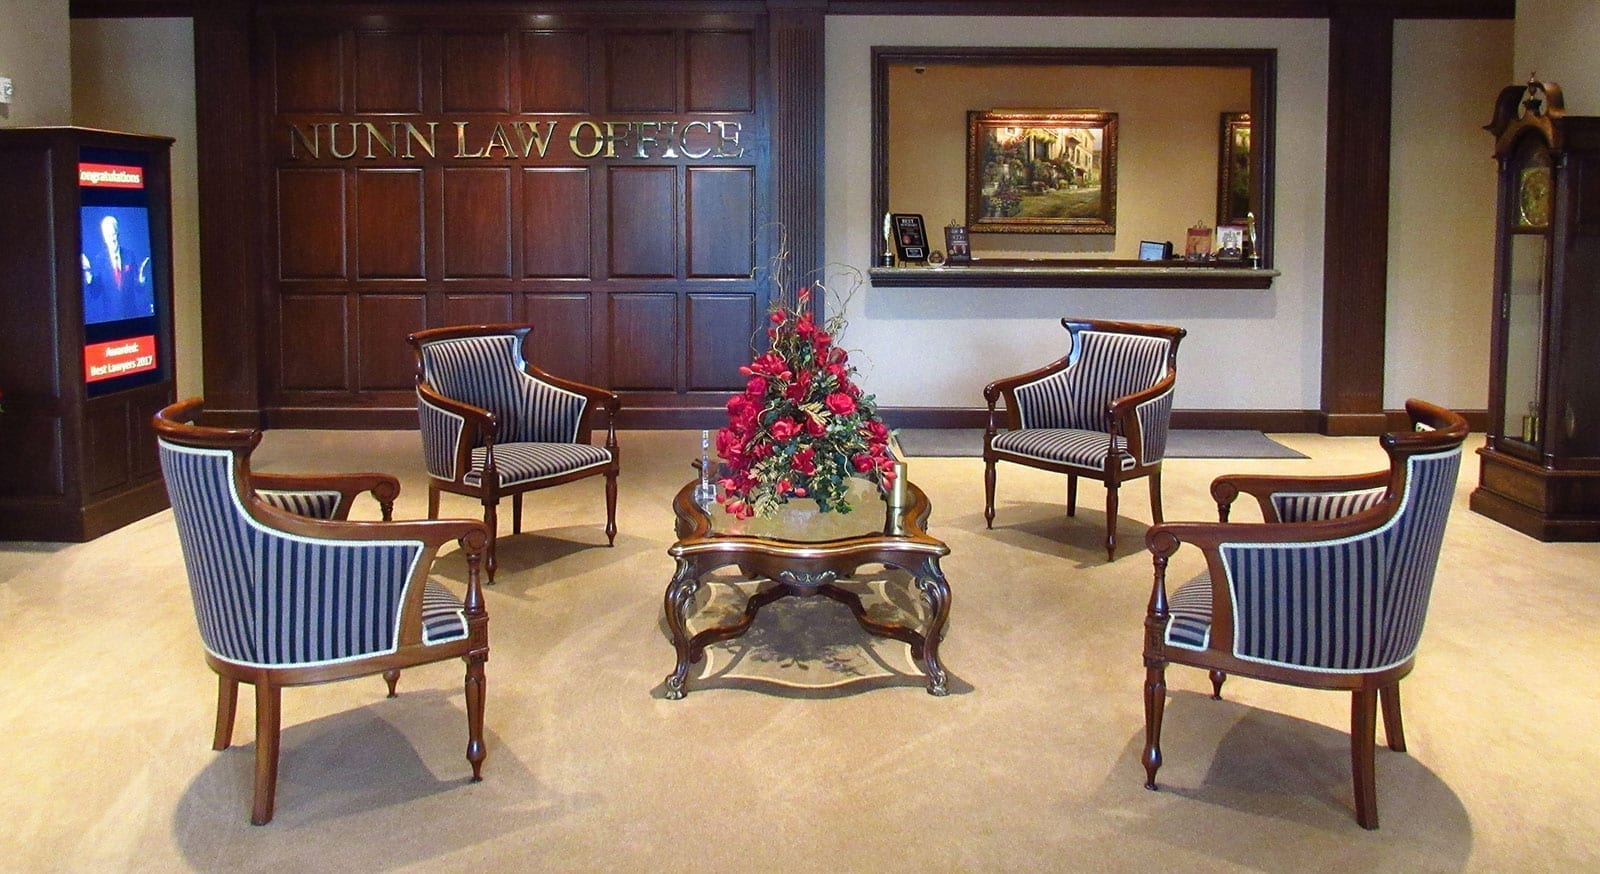 Photo of the lobby of Ken Nunn Law Office